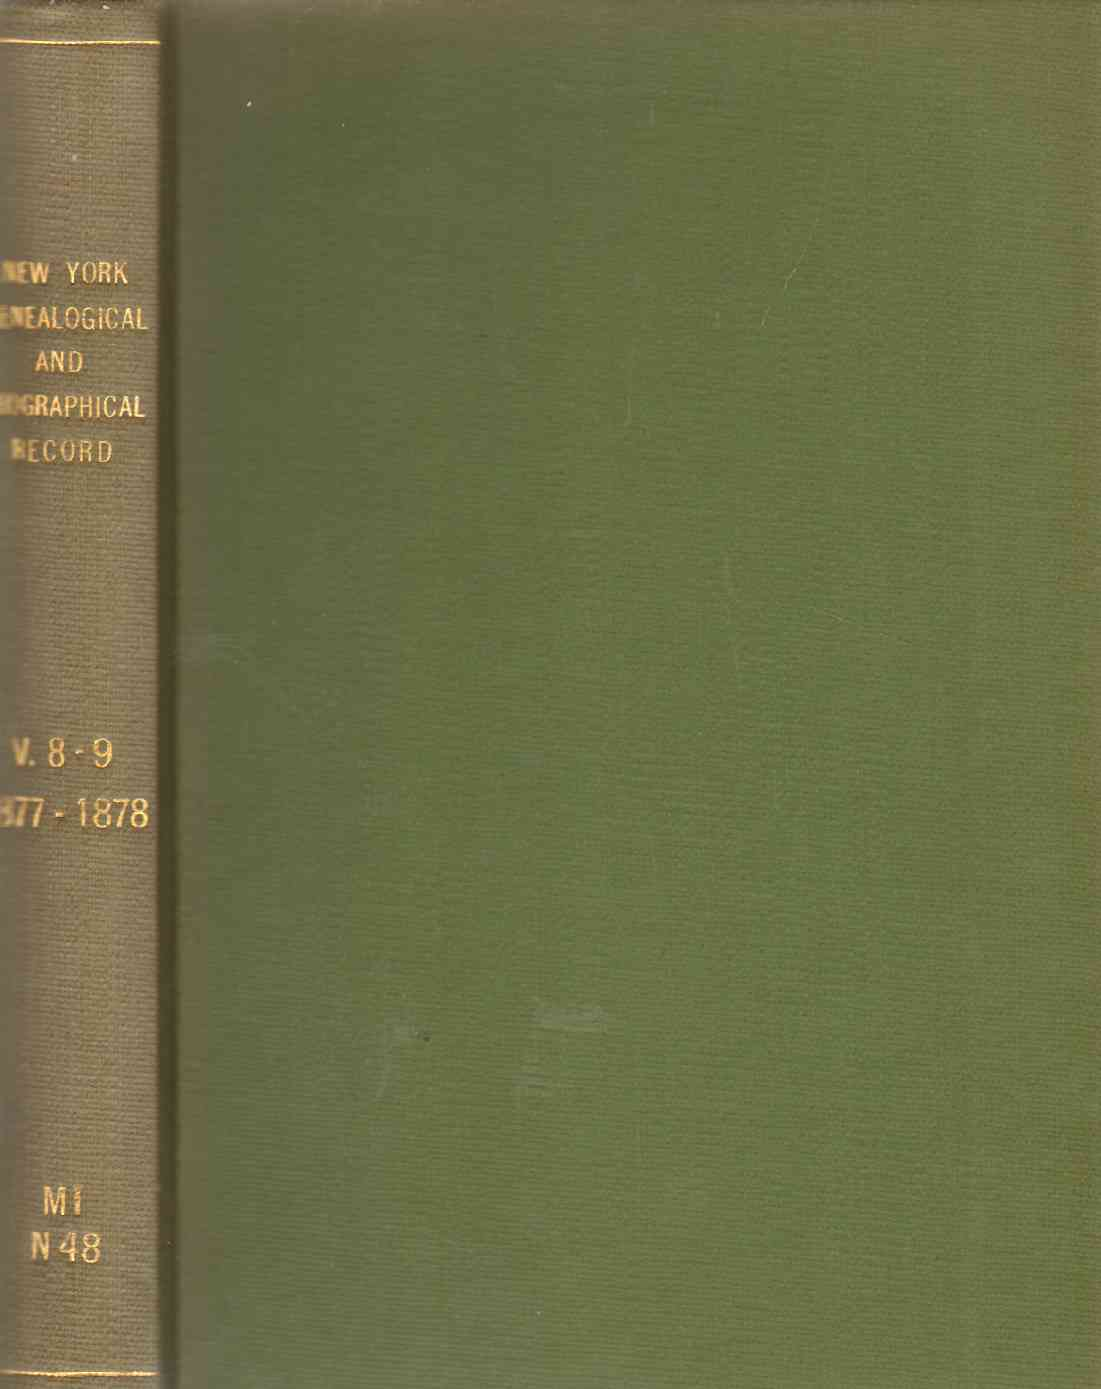 Image for NEW YORK GENEALOGICAL AND BIOGRAPHICAL RECORD Volumes VIII & IX January 1877 to October 1878